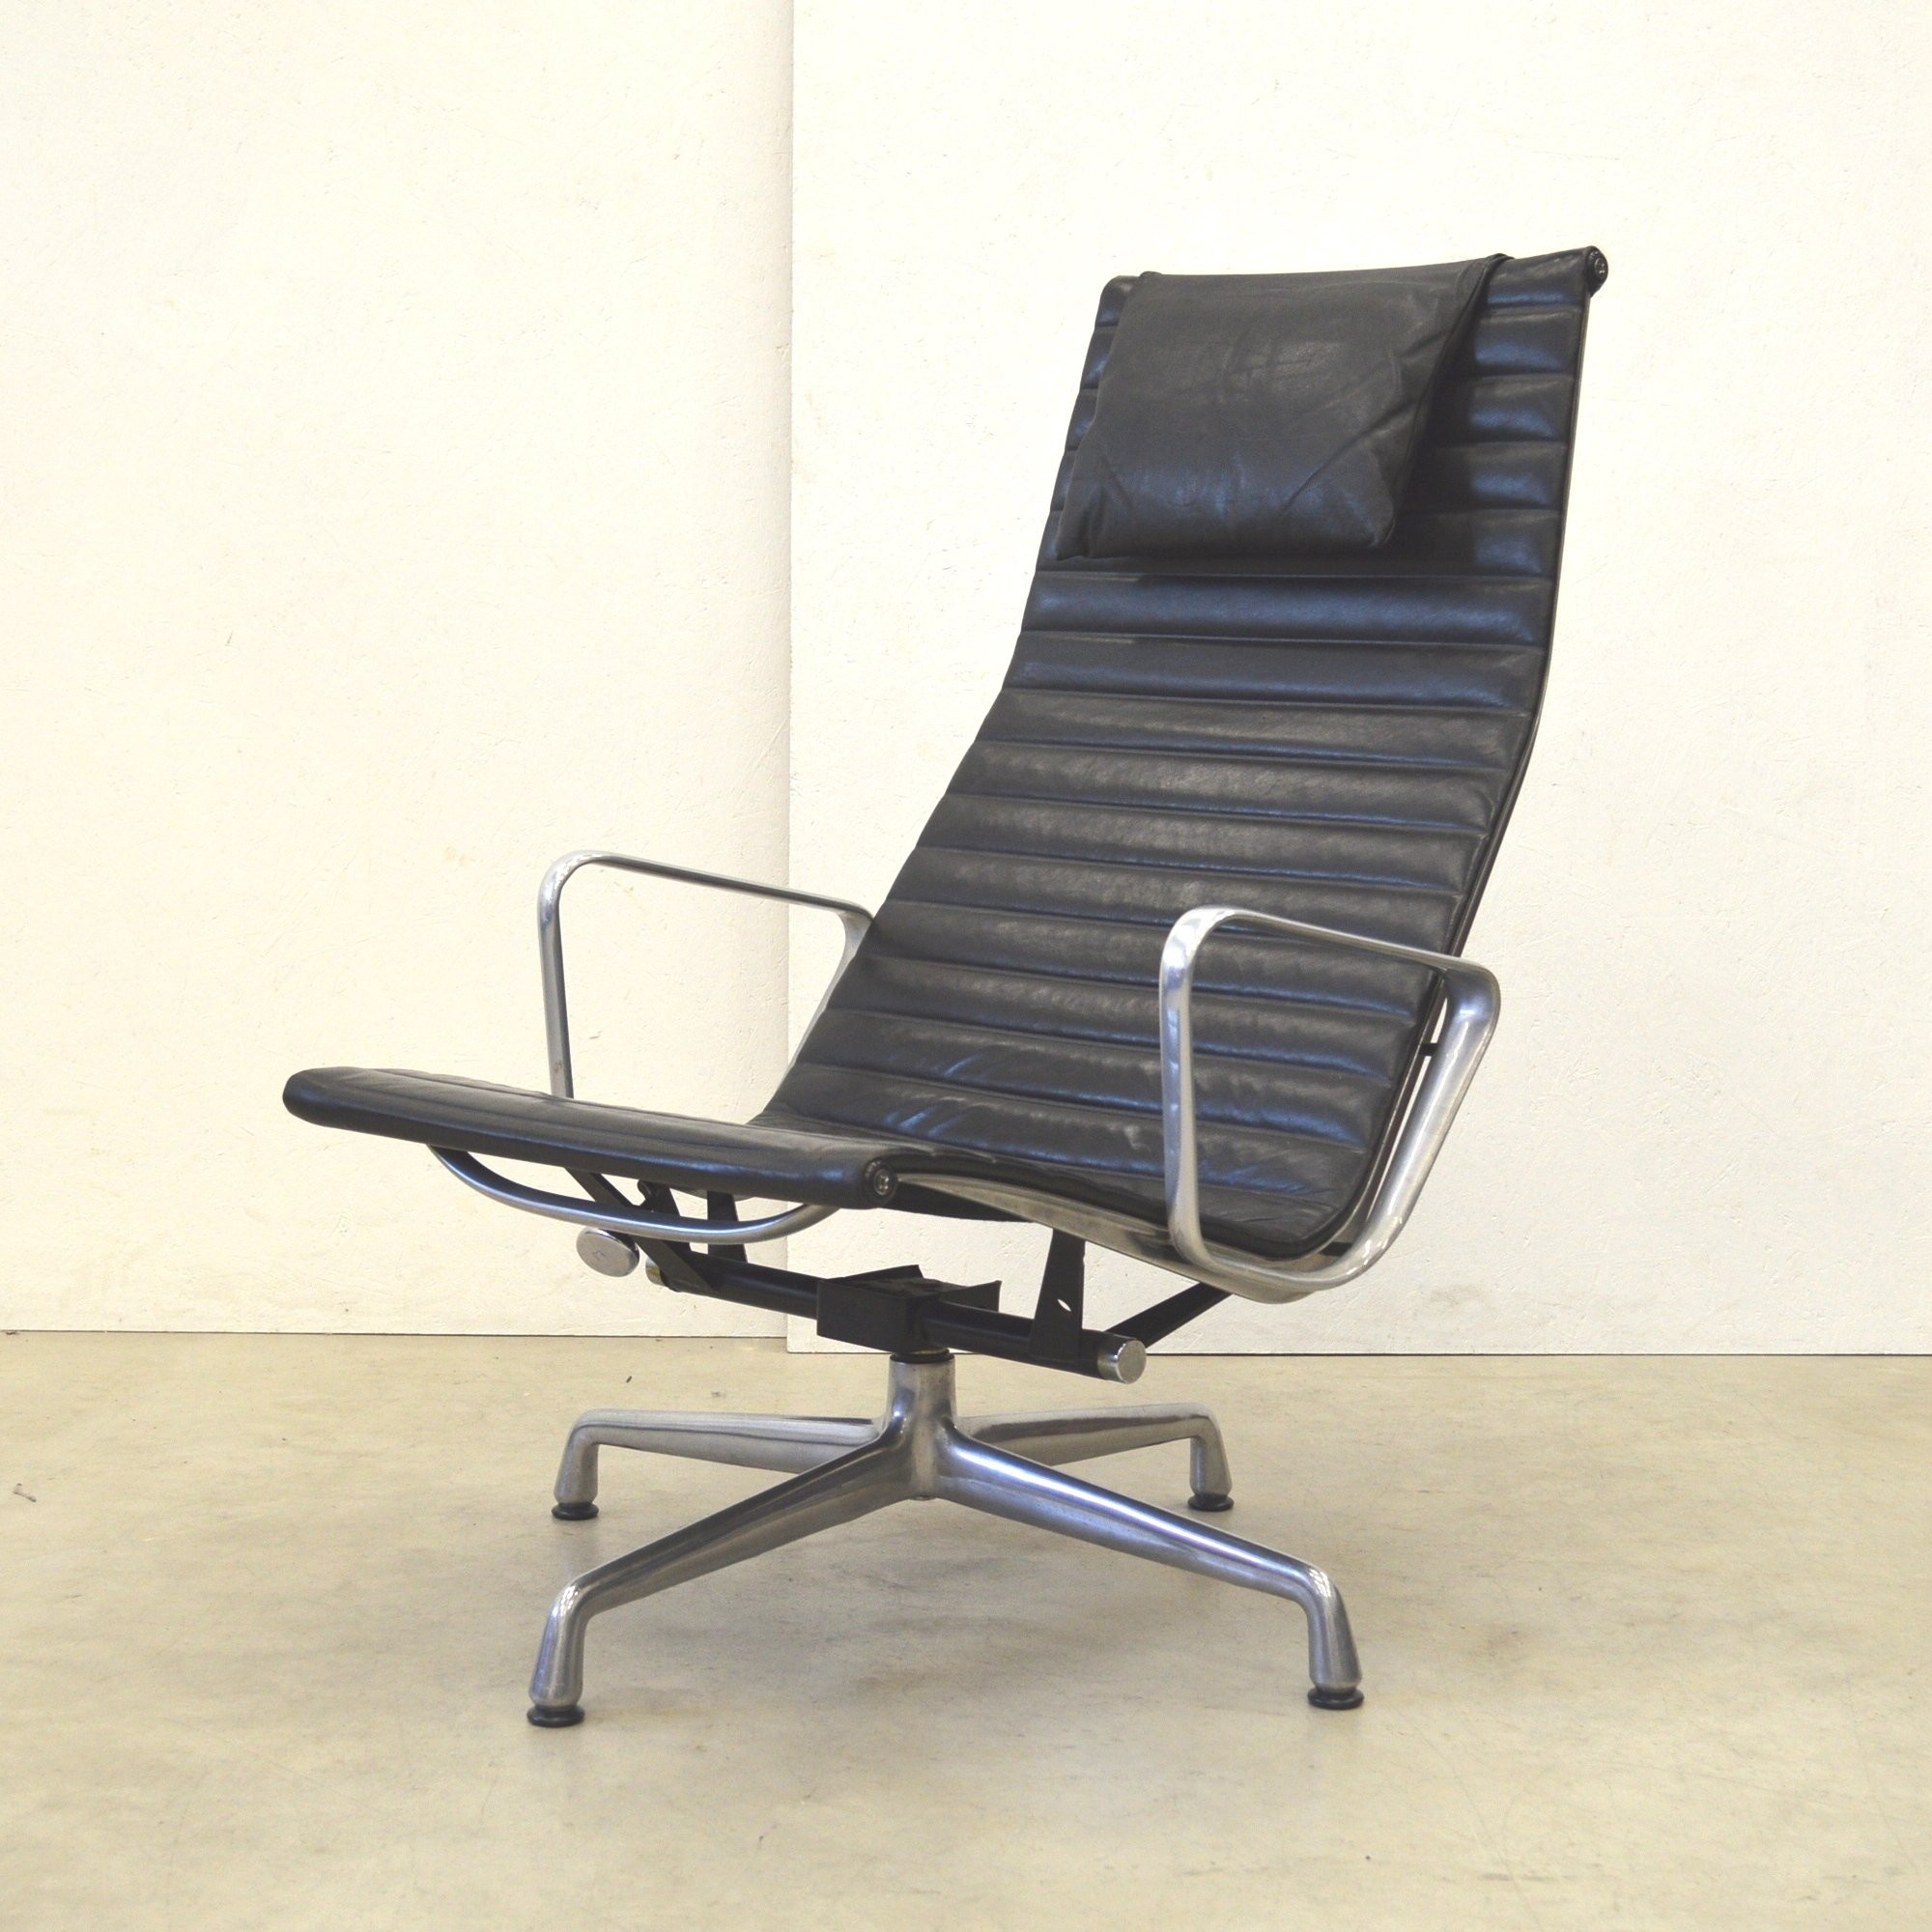 Ea124 lounge chair by charles ray eames for herman miller 1970s 64882 - Eames chair herman miller ...